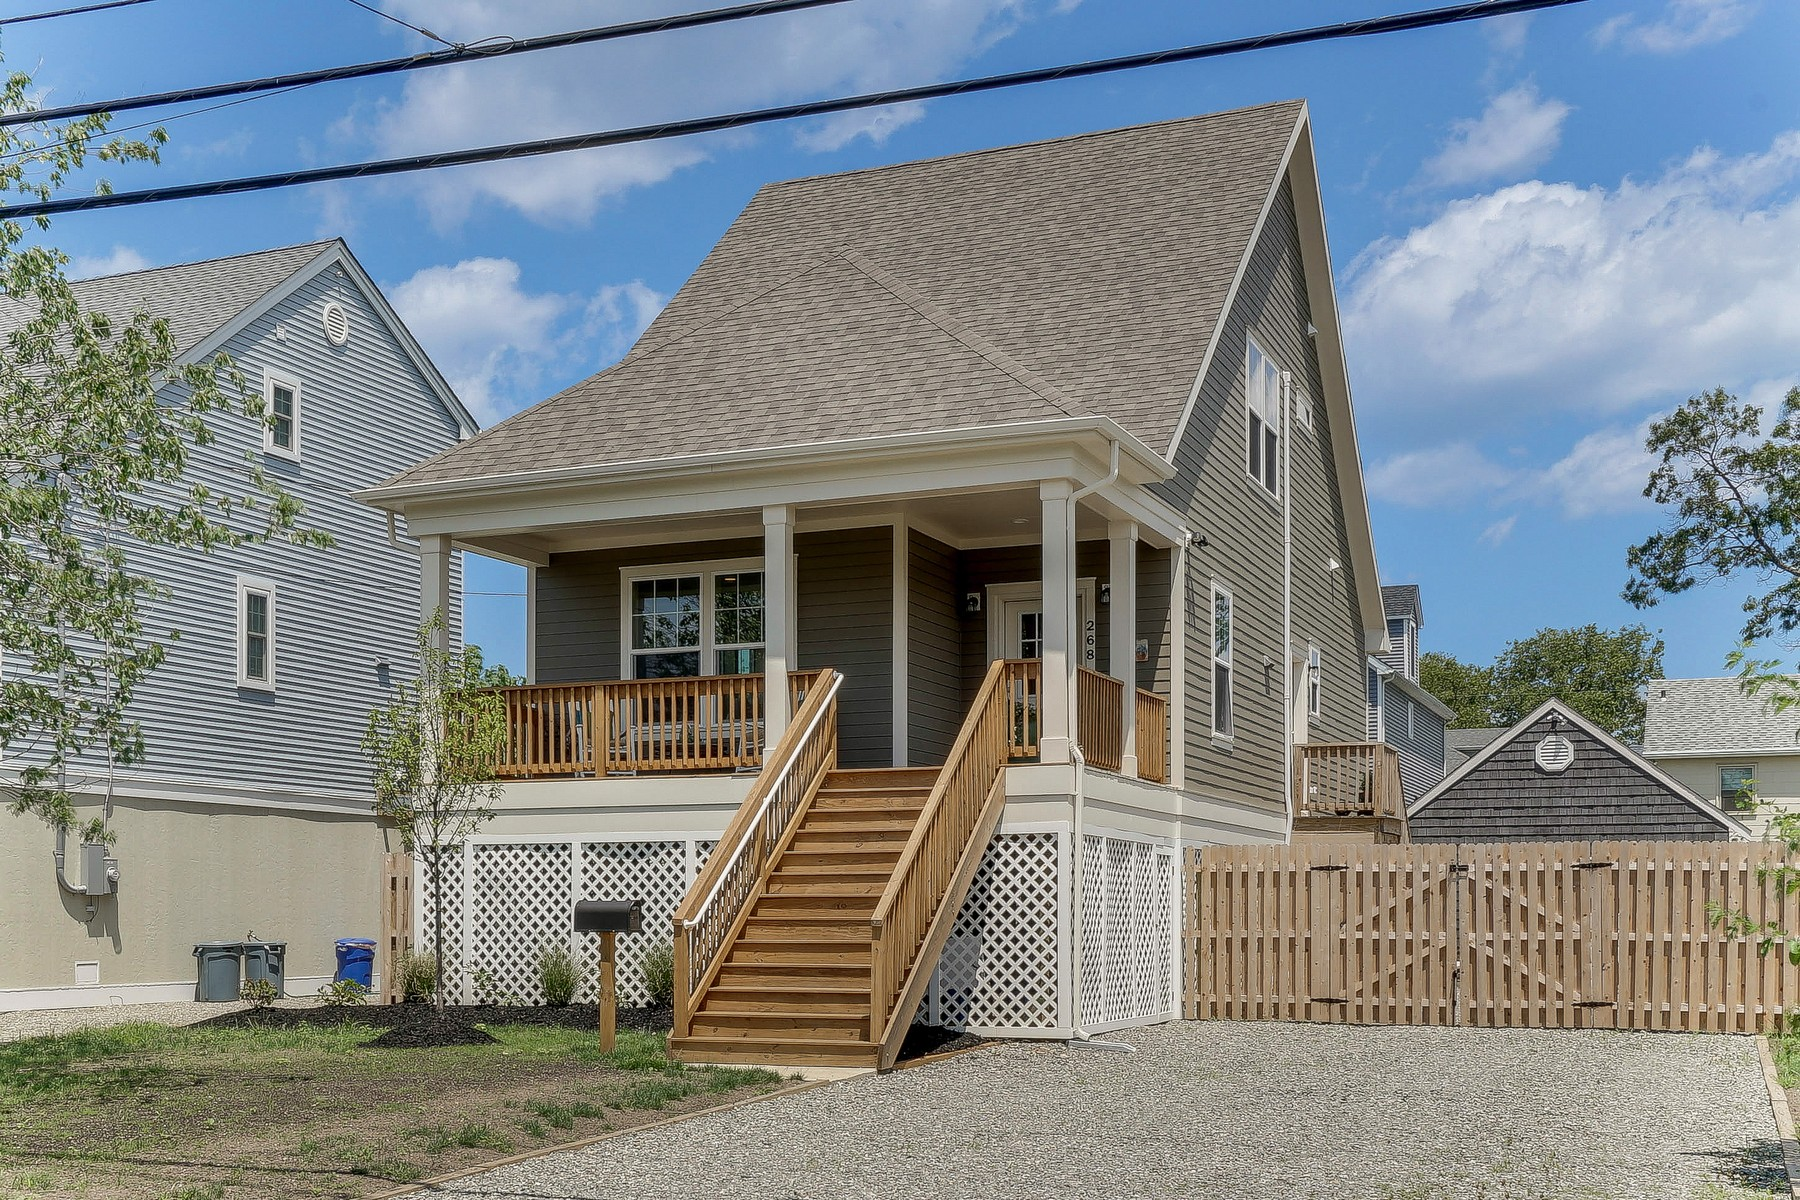 Single Family Home for Sale at A-Frame Cape 268 E Virignia Ave Manasquan, New Jersey 08736 United States